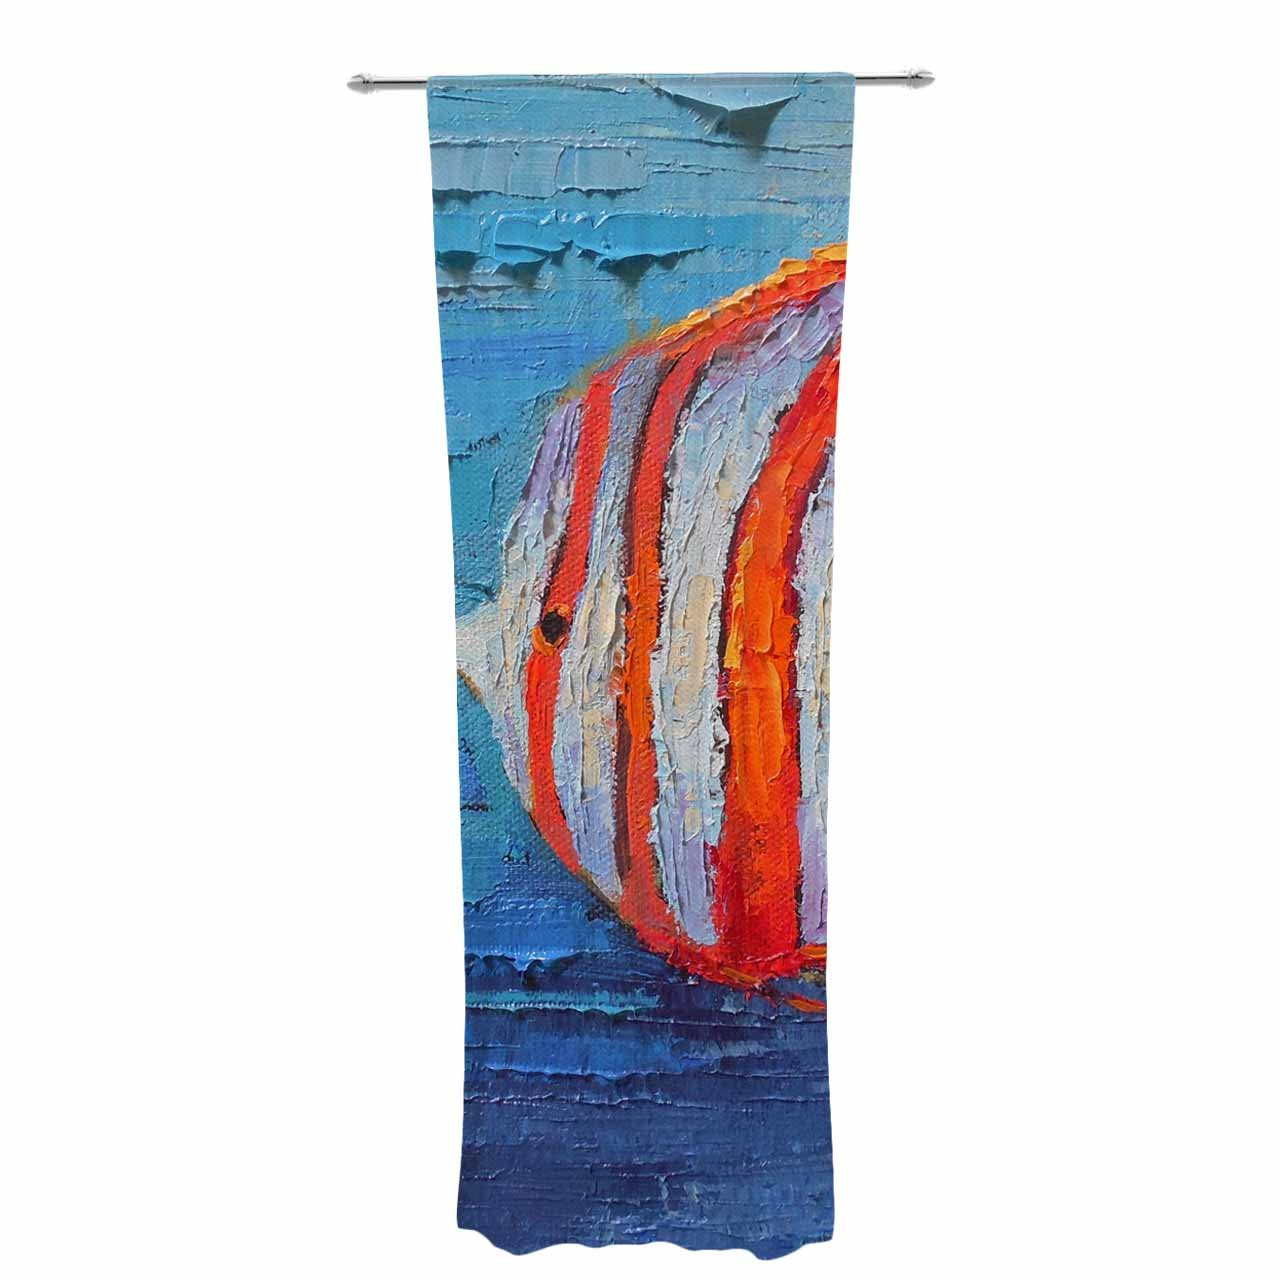 Kess InHouse Carol Schiff Coral Reef Fish 1' Blue Orange Painting Decorative Set, 30' x 84' Sheer Curtains